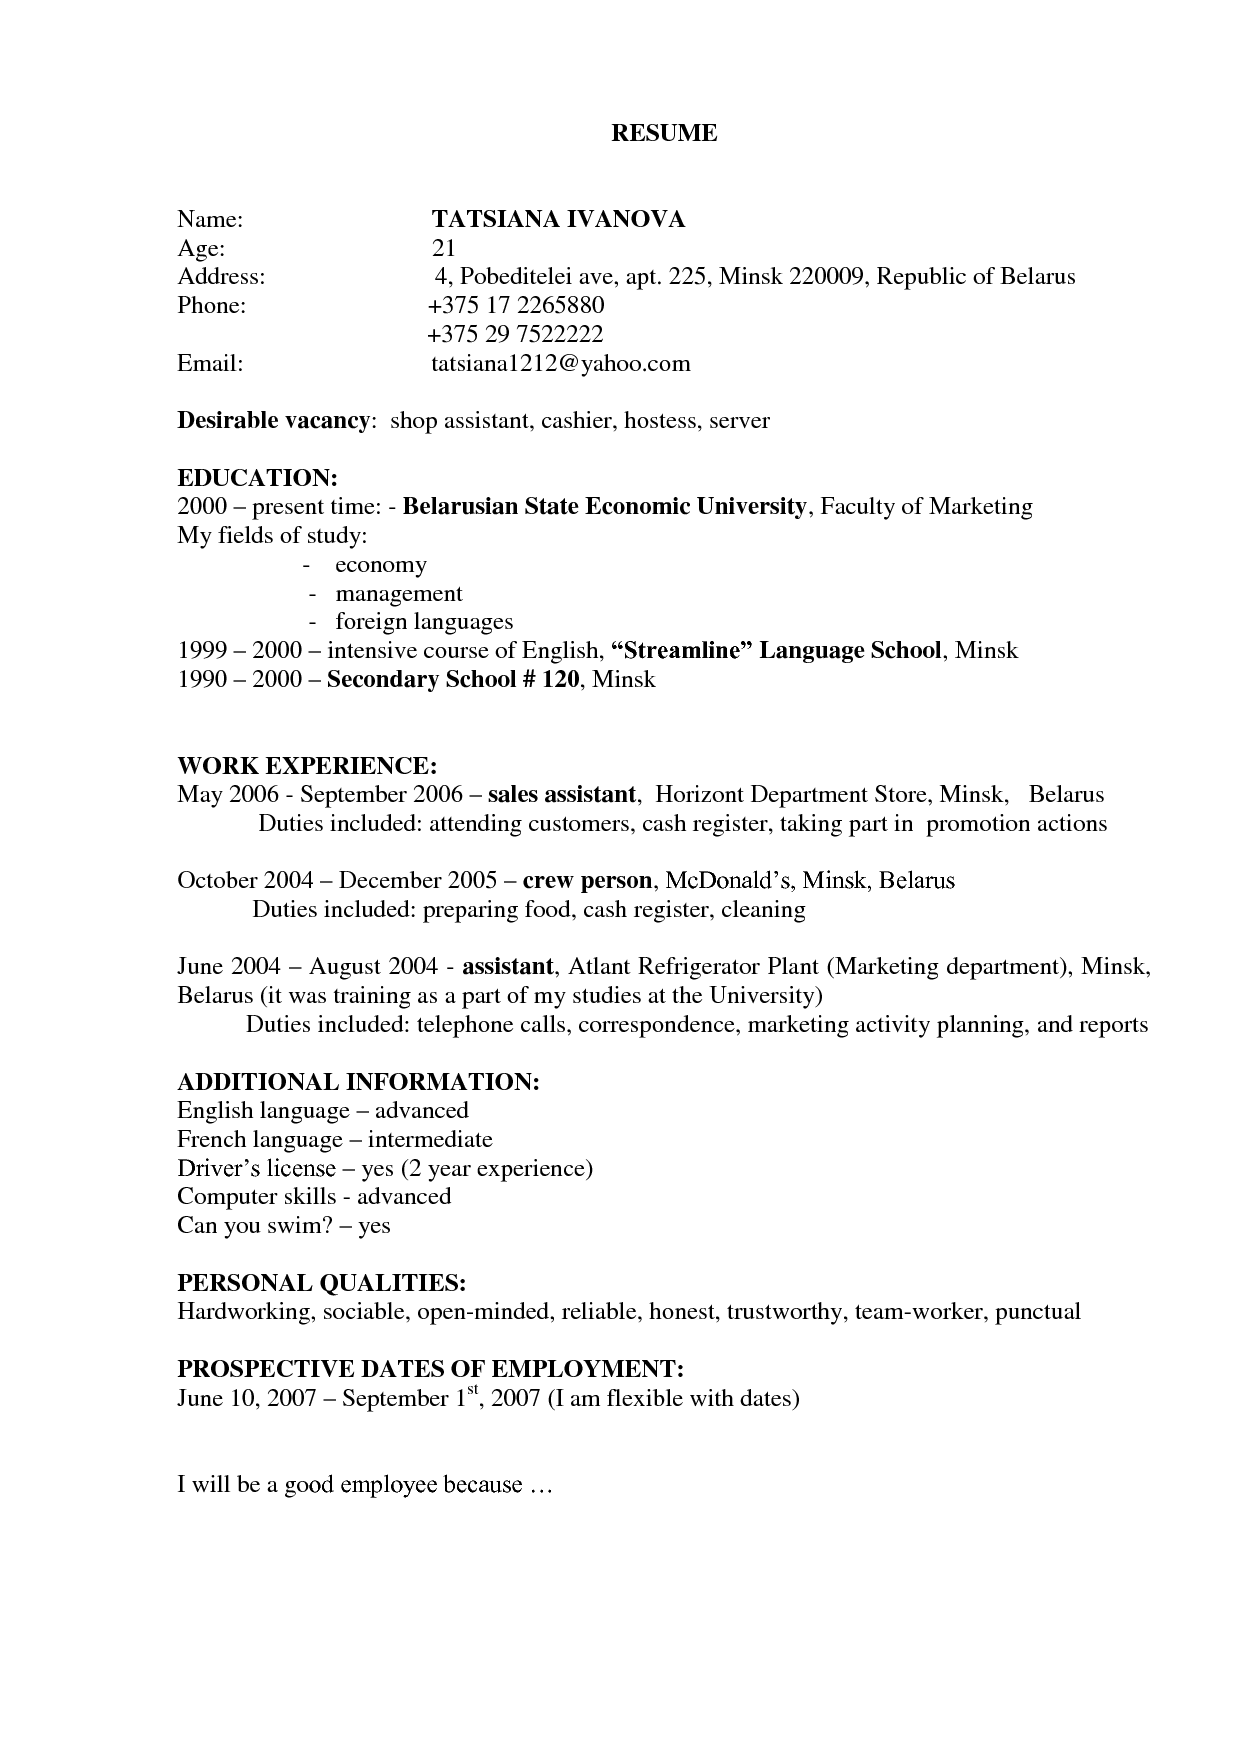 Hostess Resume Job Description For Tatsiana Ivanova